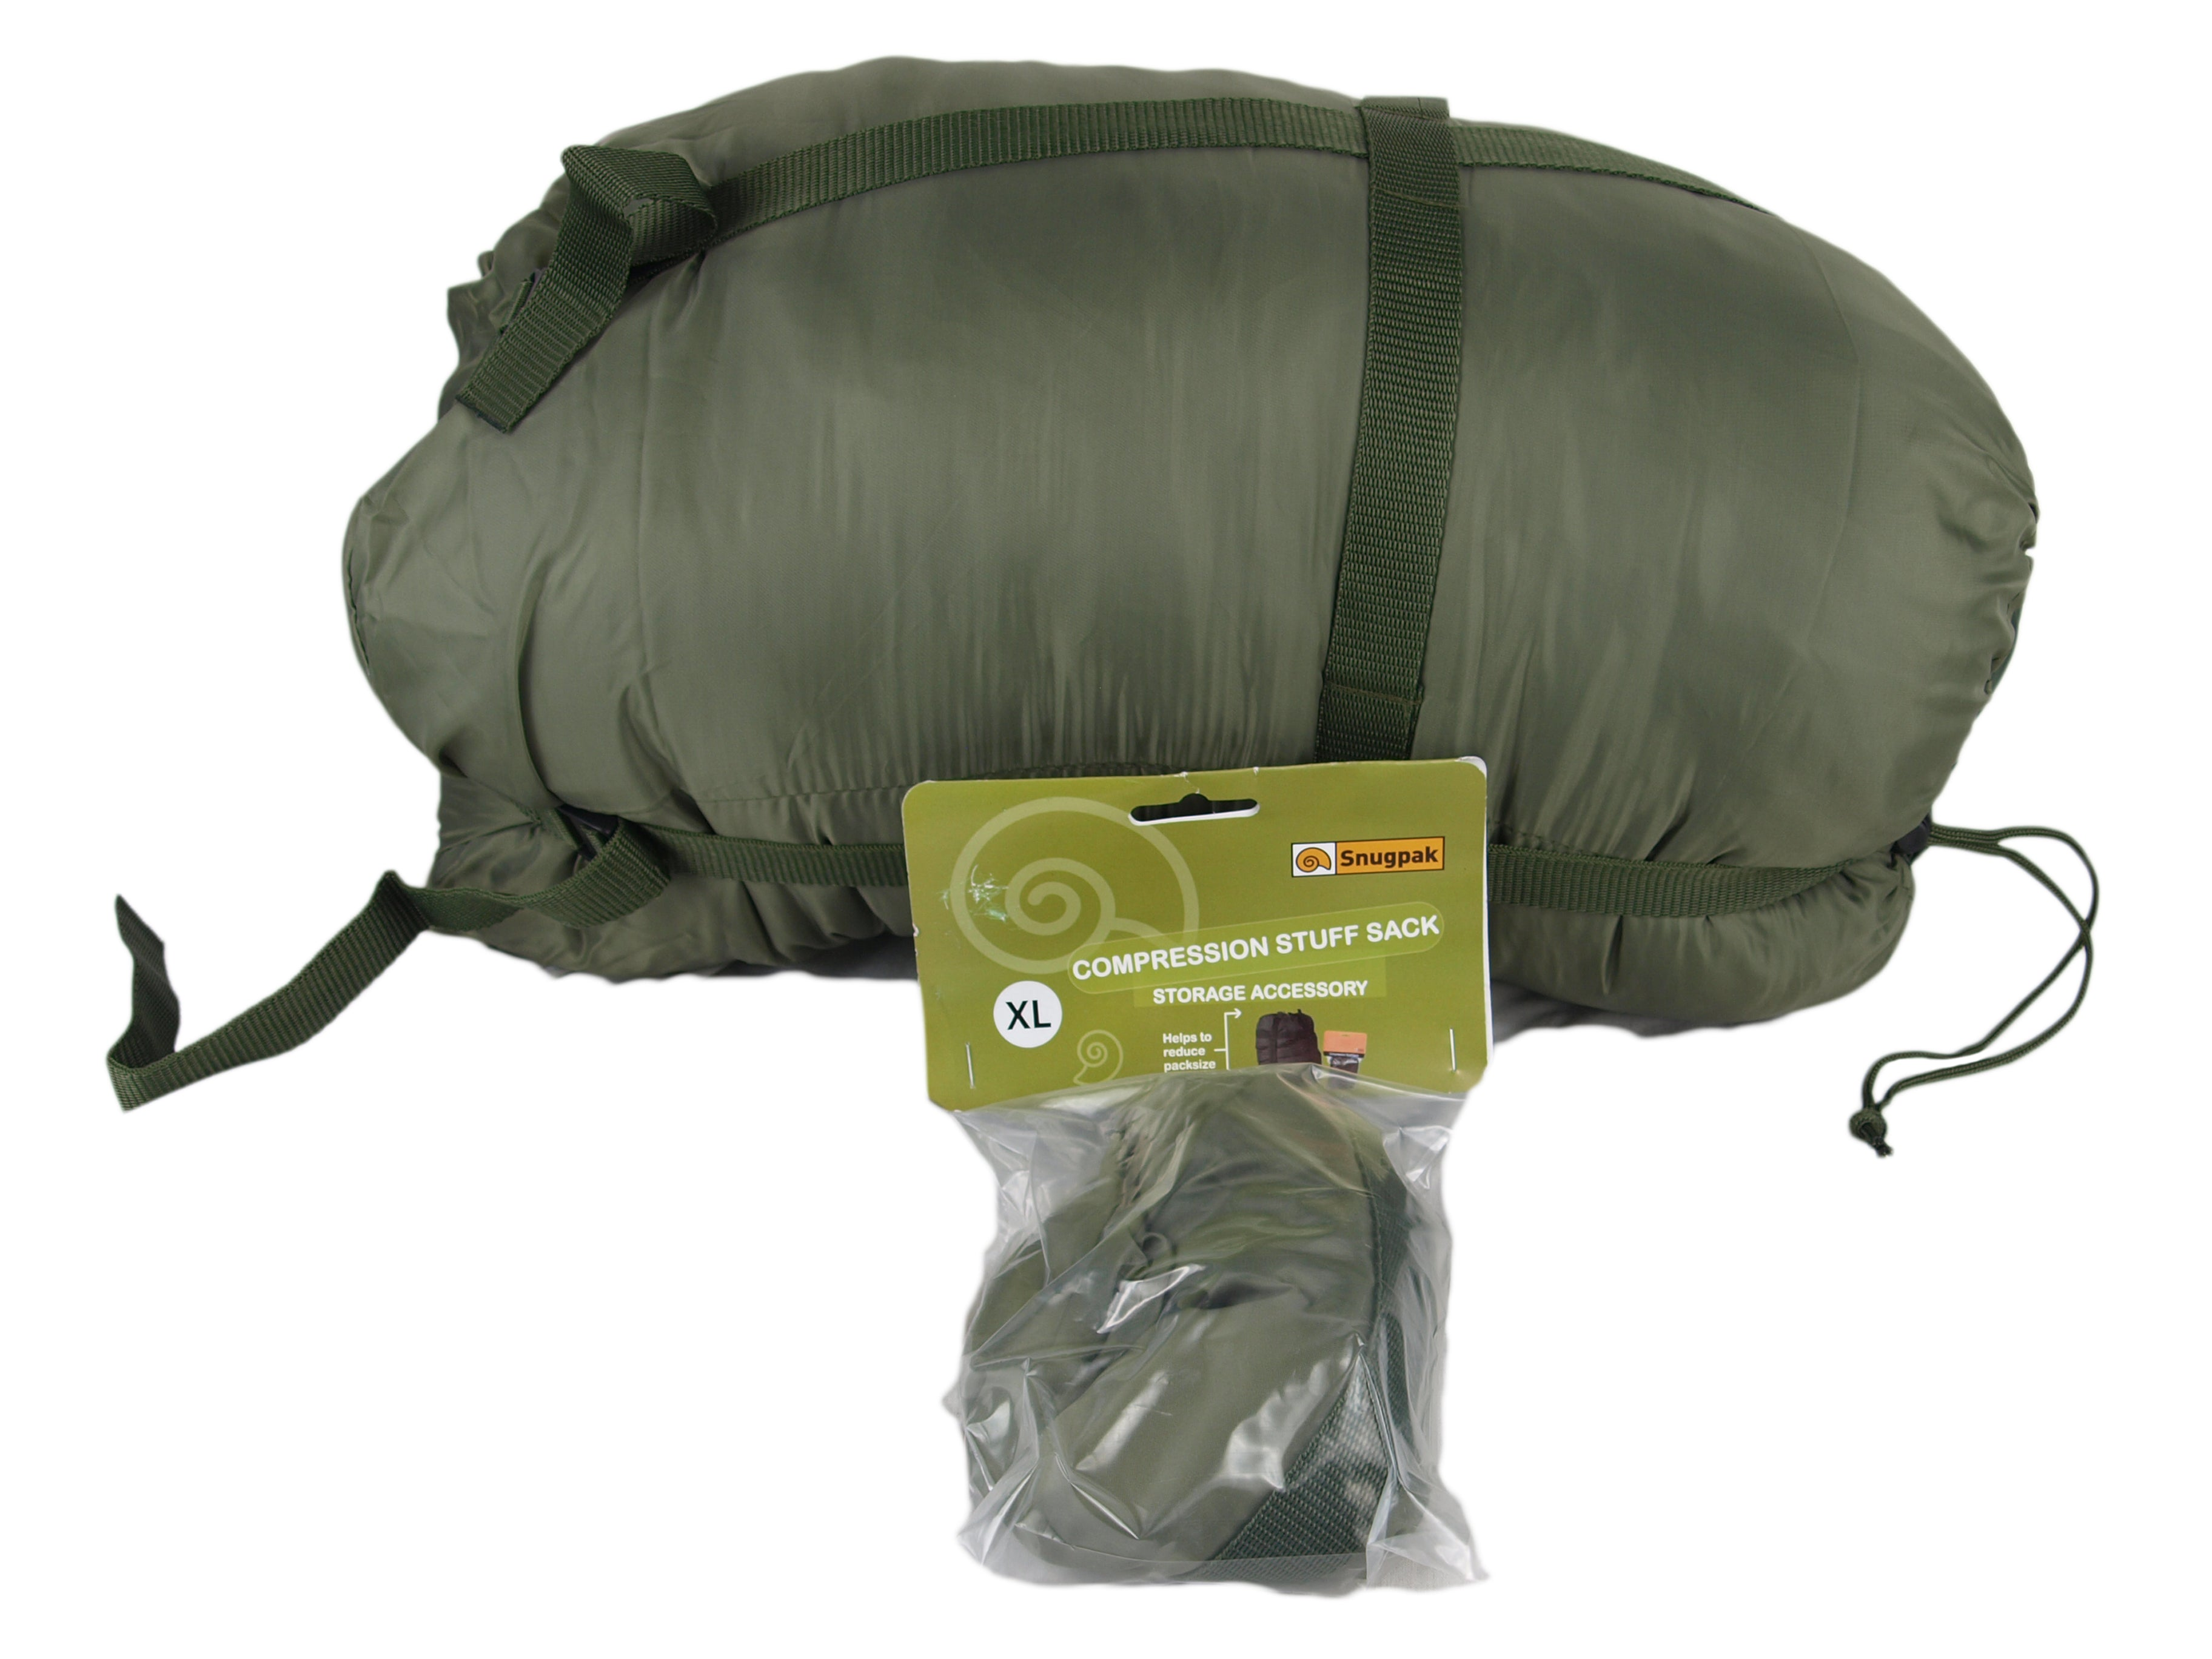 Snugpak Sleeping Bag/ Clothing Compression Stuff Sack